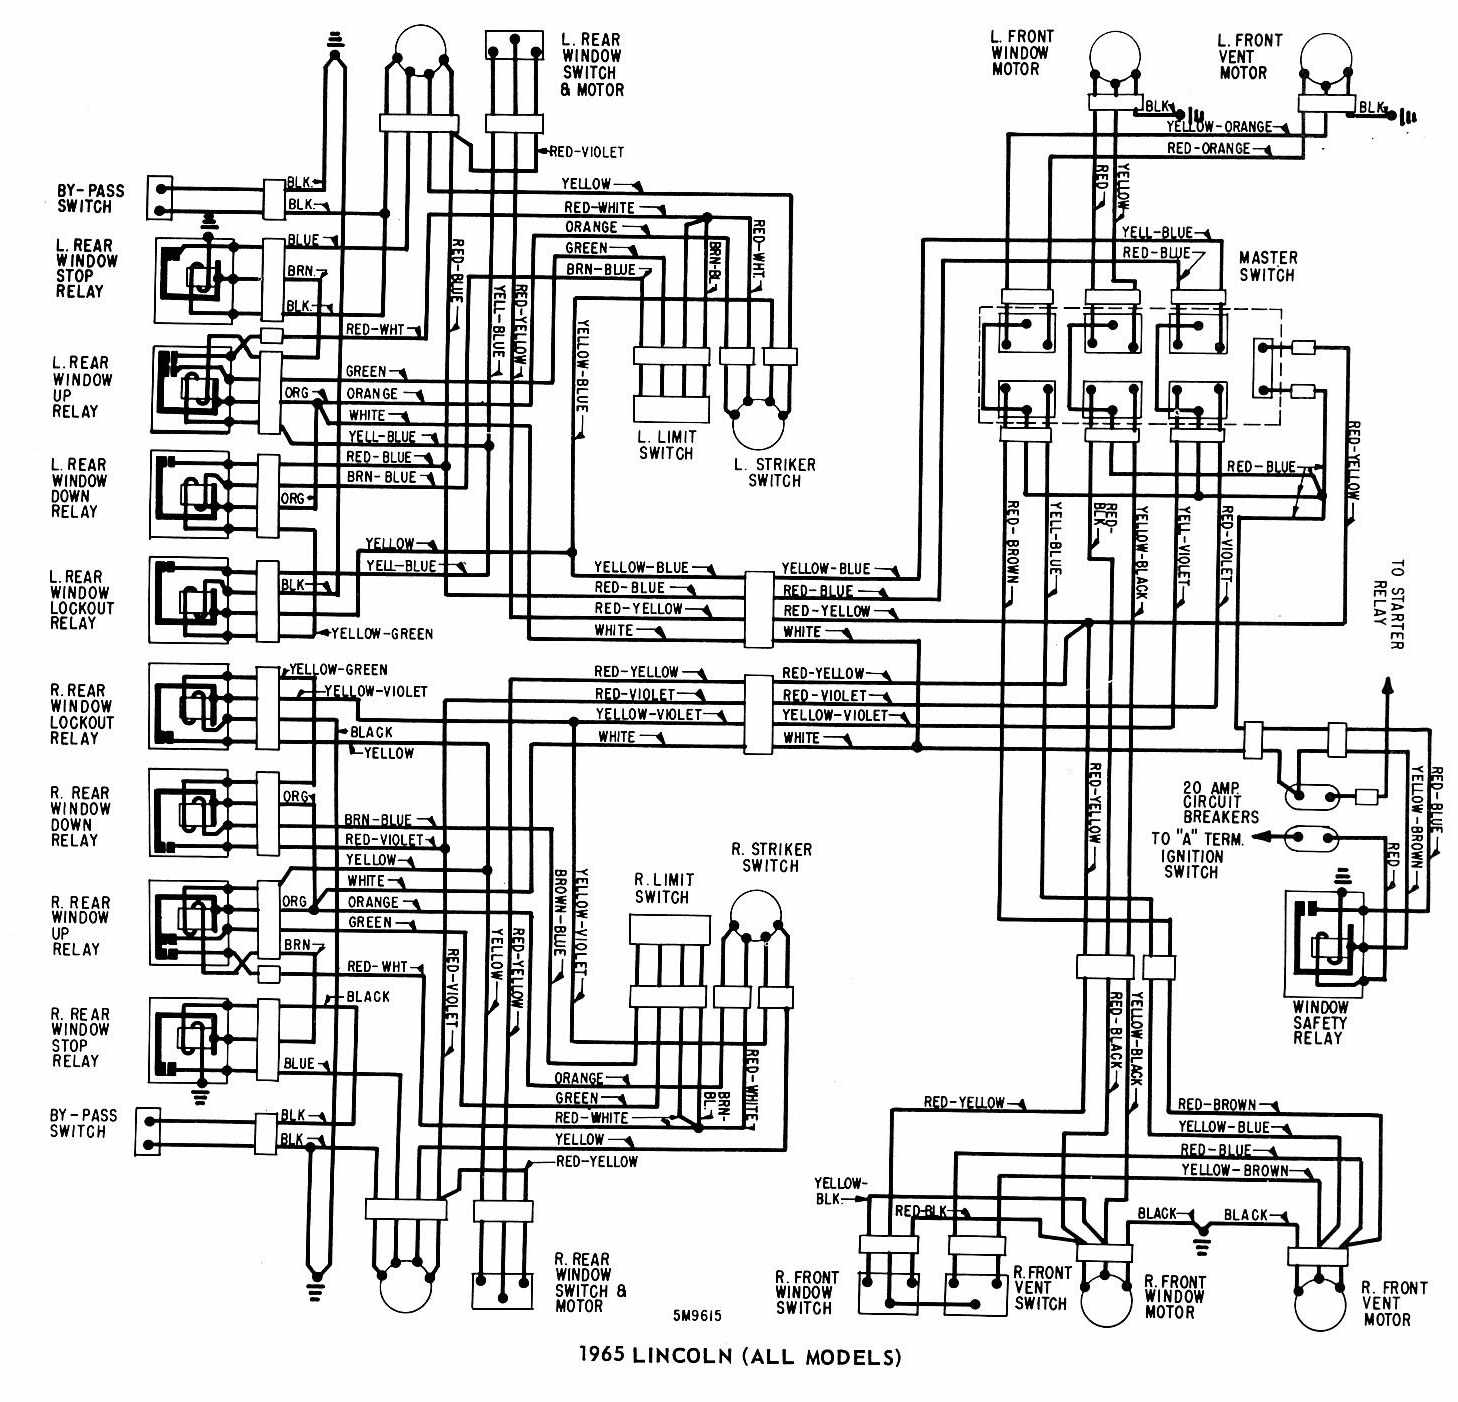 lincoln all models windows wiring diagram jpg 1458x1402 2004 ford power window  wiring diagram